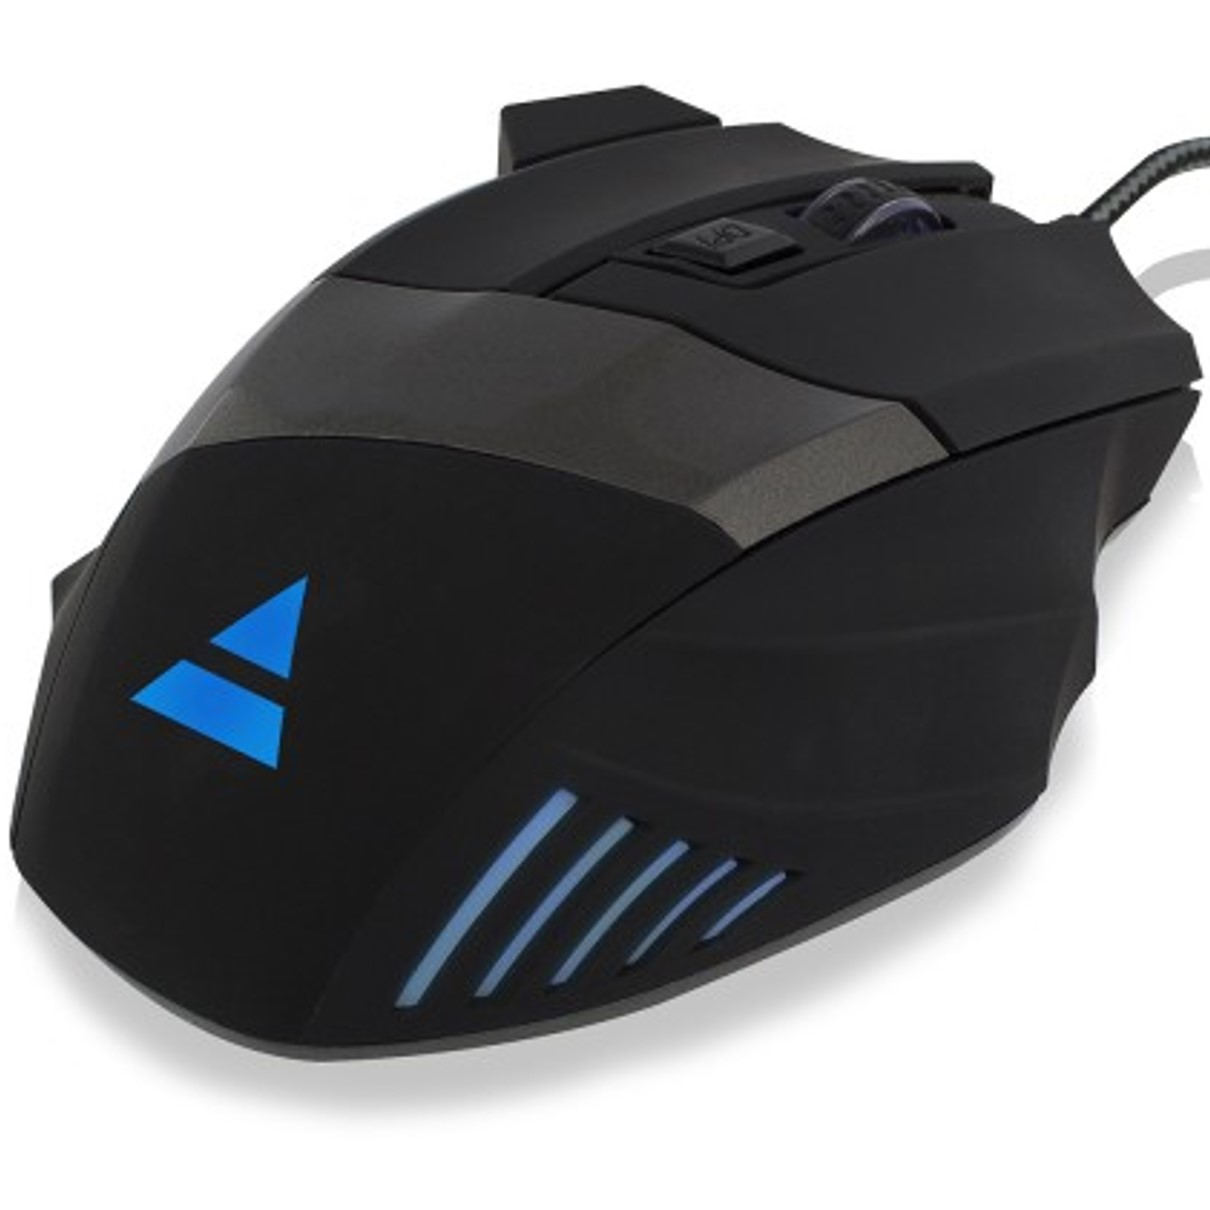 MOUSE RATON GAMING EWENT PL3300 OPTICO / USB / 3200DPI ILUMINADO